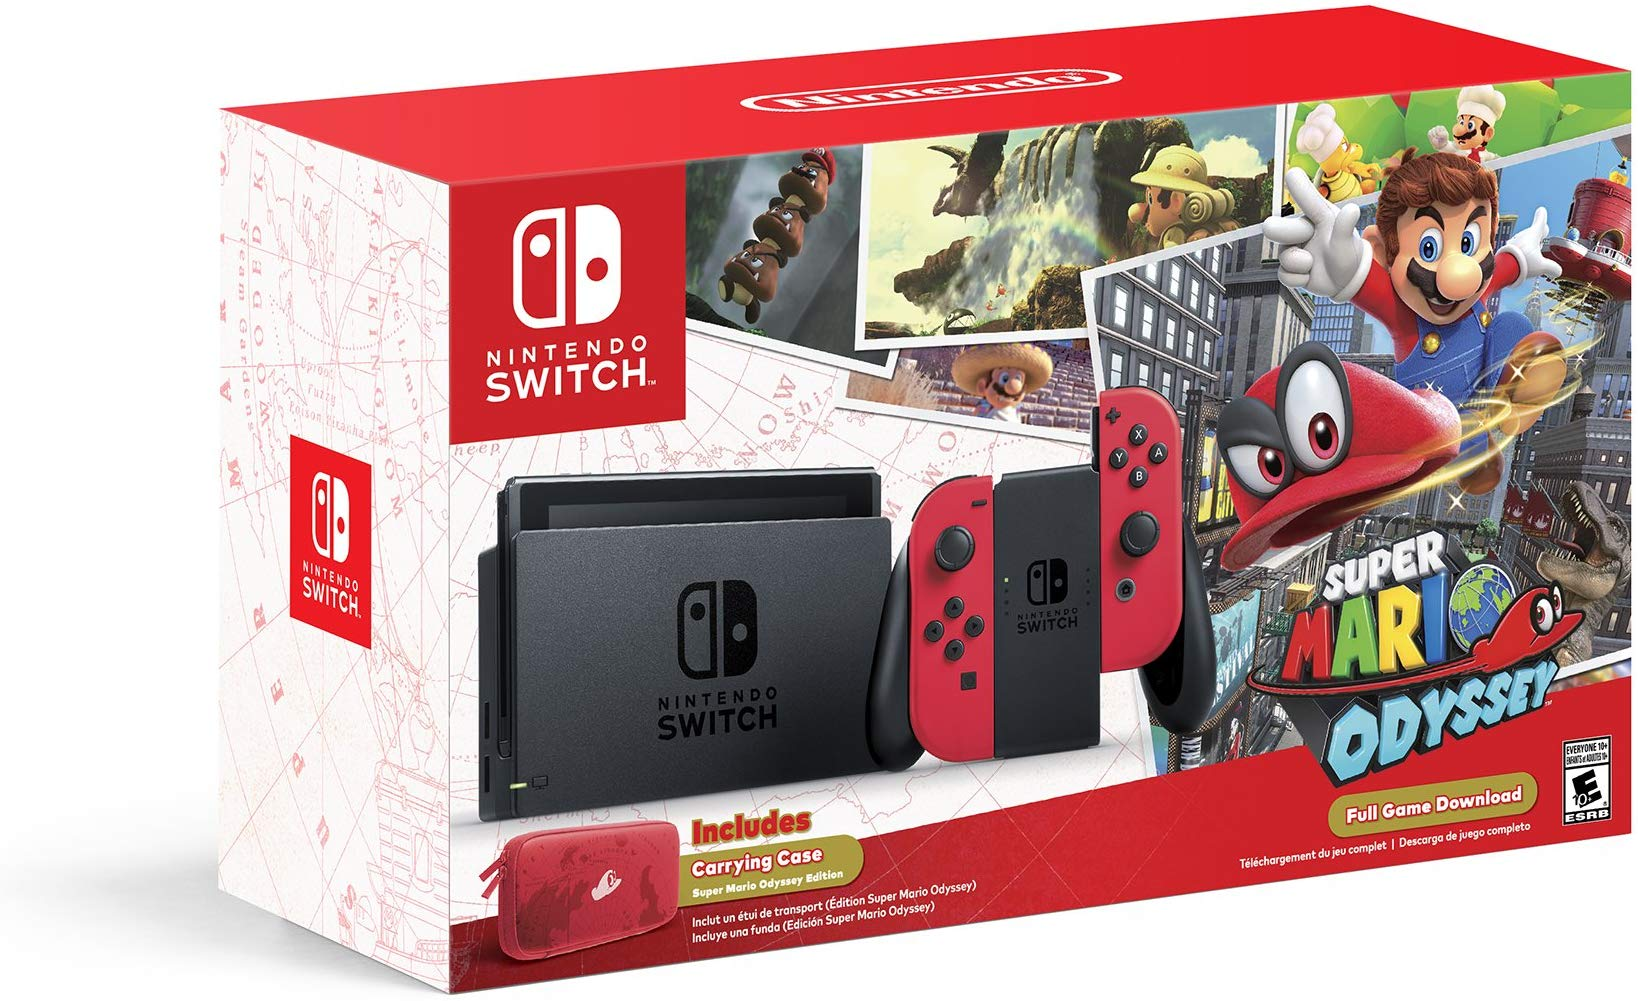 Nintendo switch box clipart clipart royalty free library Amazon.com: Nintendo Switch - Super Mario Odyssey Edition: Video Games clipart royalty free library